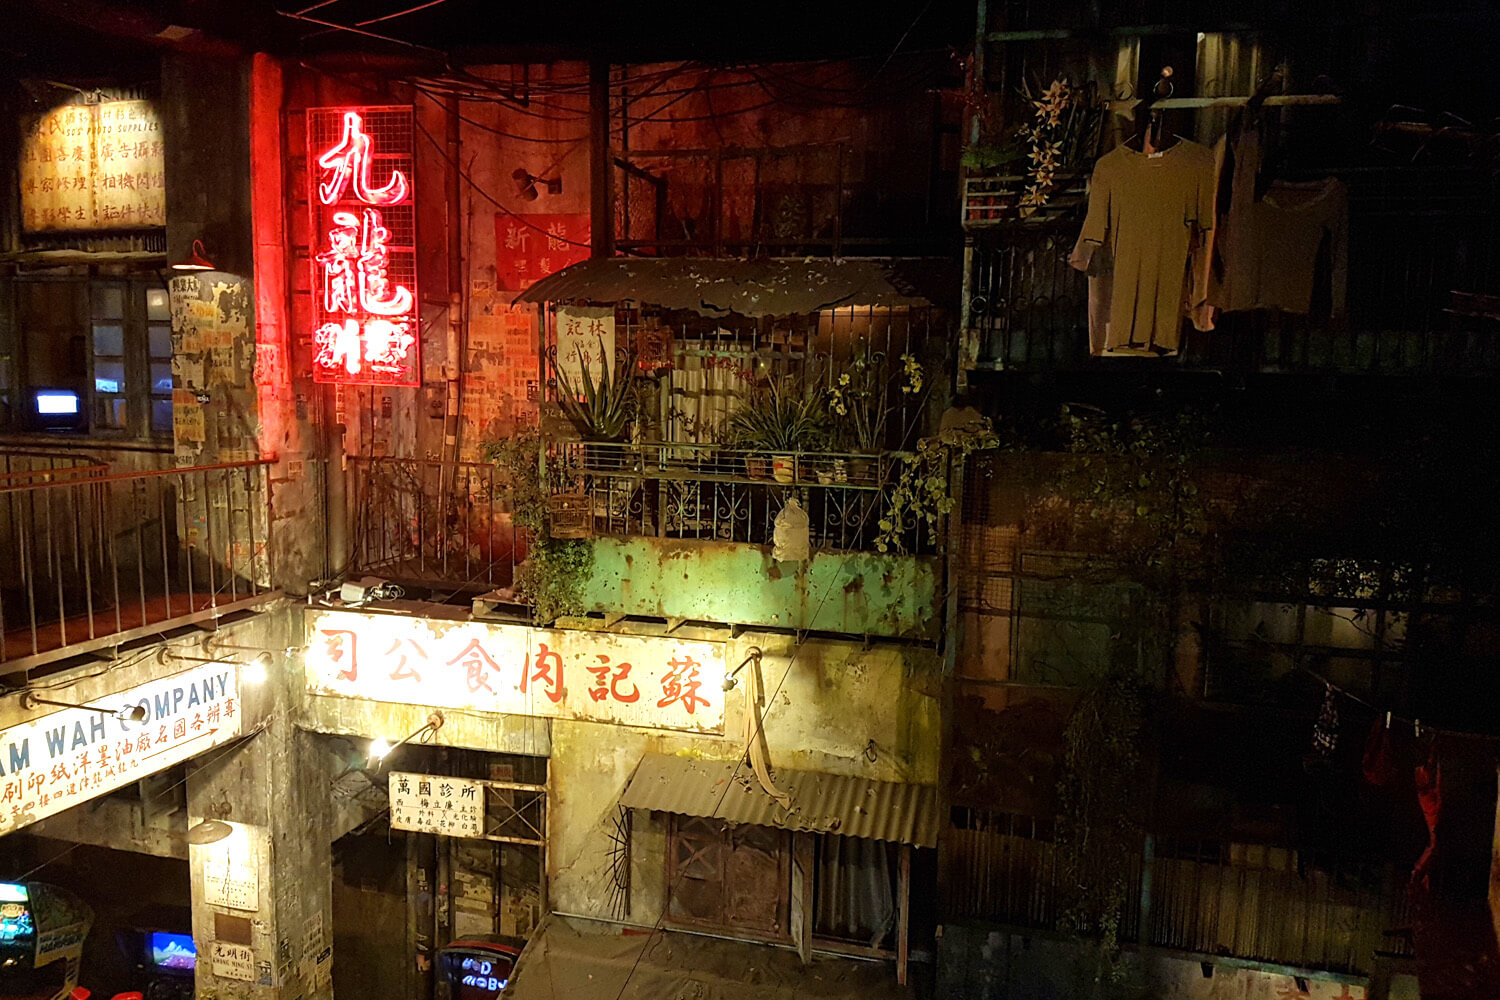 Recreated Hong Kong's Kowloon Walled City at Anata no Warehouse, Kawasaki